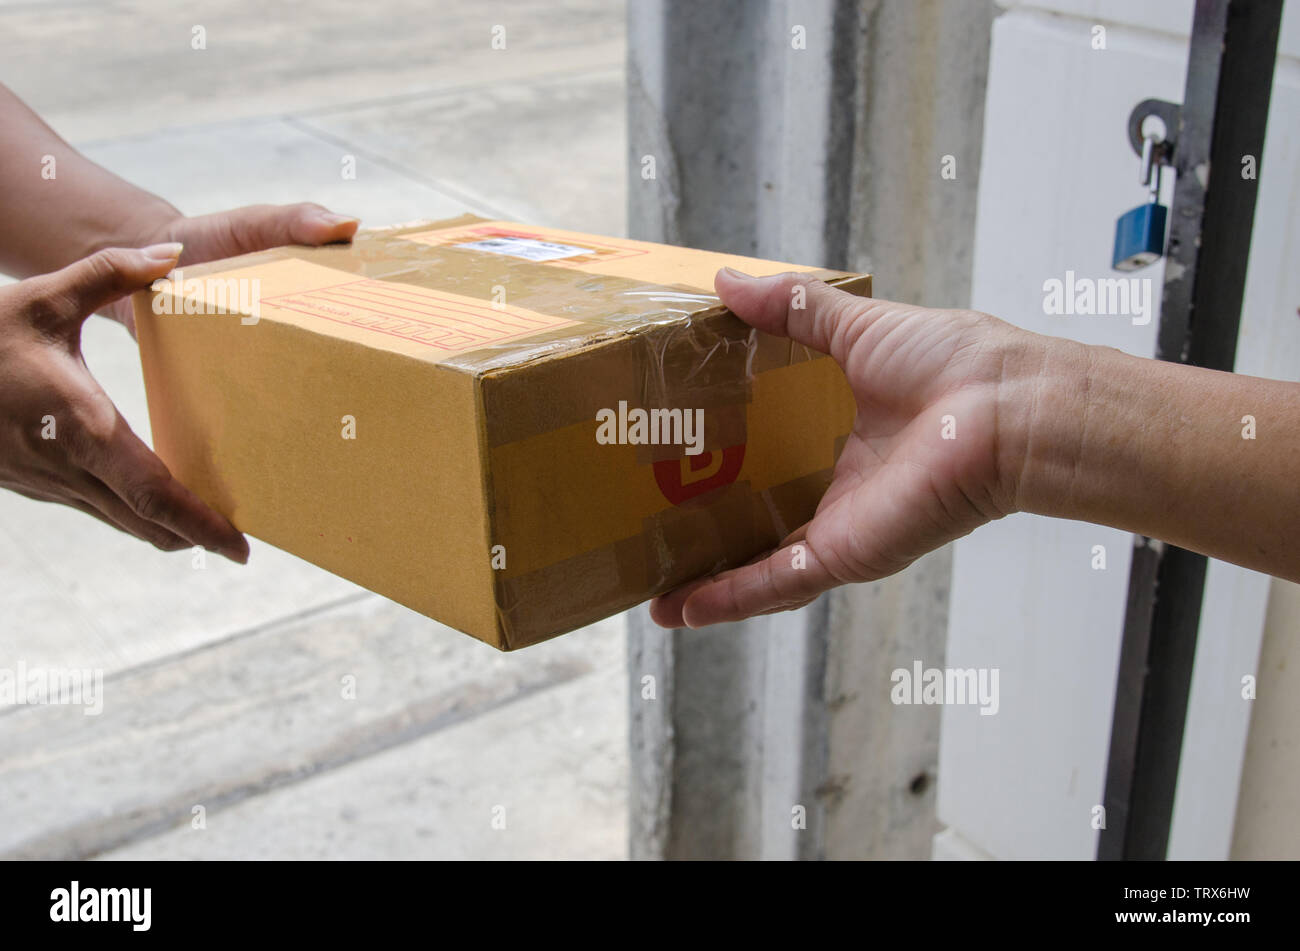 Men sent a parcel box at the front of the house, received by women. - Stock Image